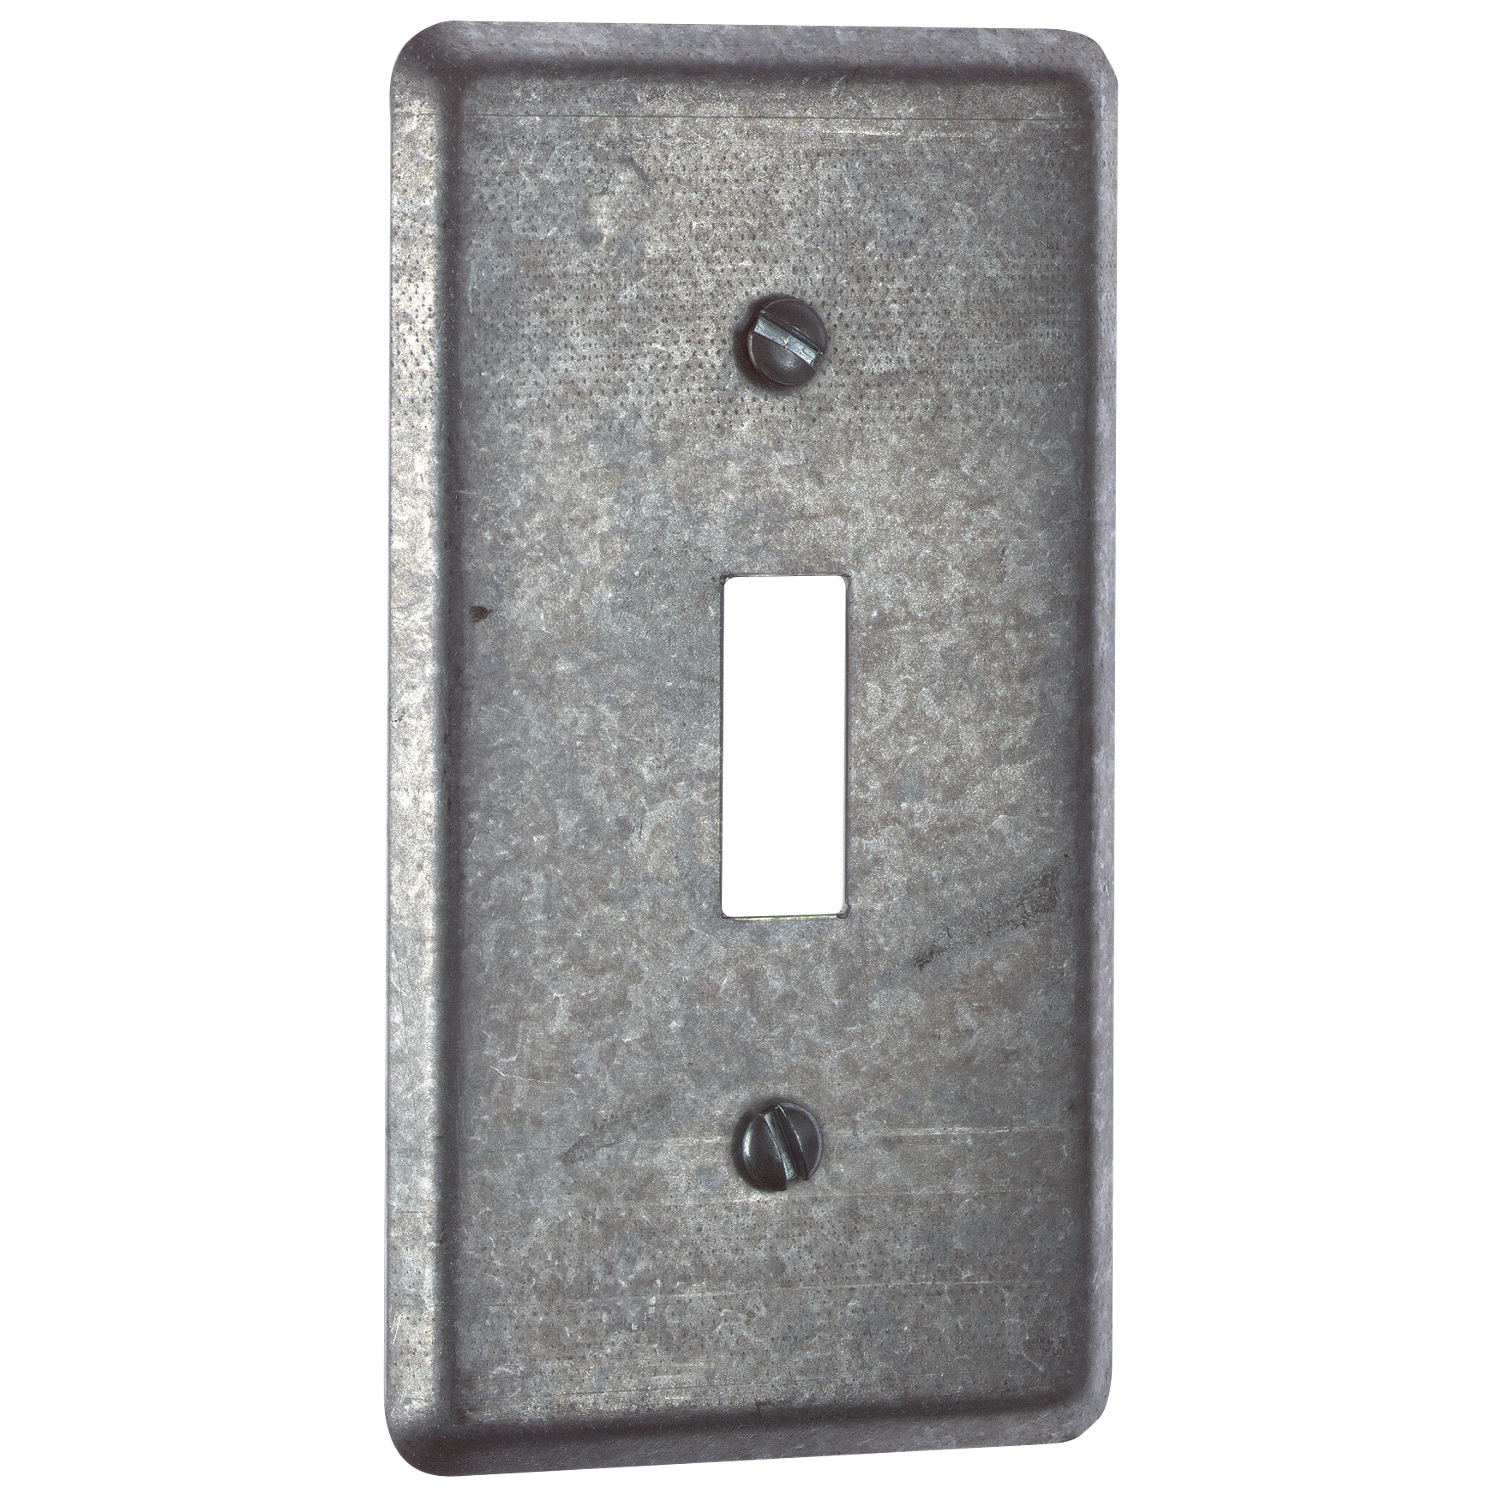 Steel City,58-C-30,Steel City® 58-C-30 Utility Outlet Box Cover With Single Toggle Switch, 4 in L x 2-1/8 in W, Steel